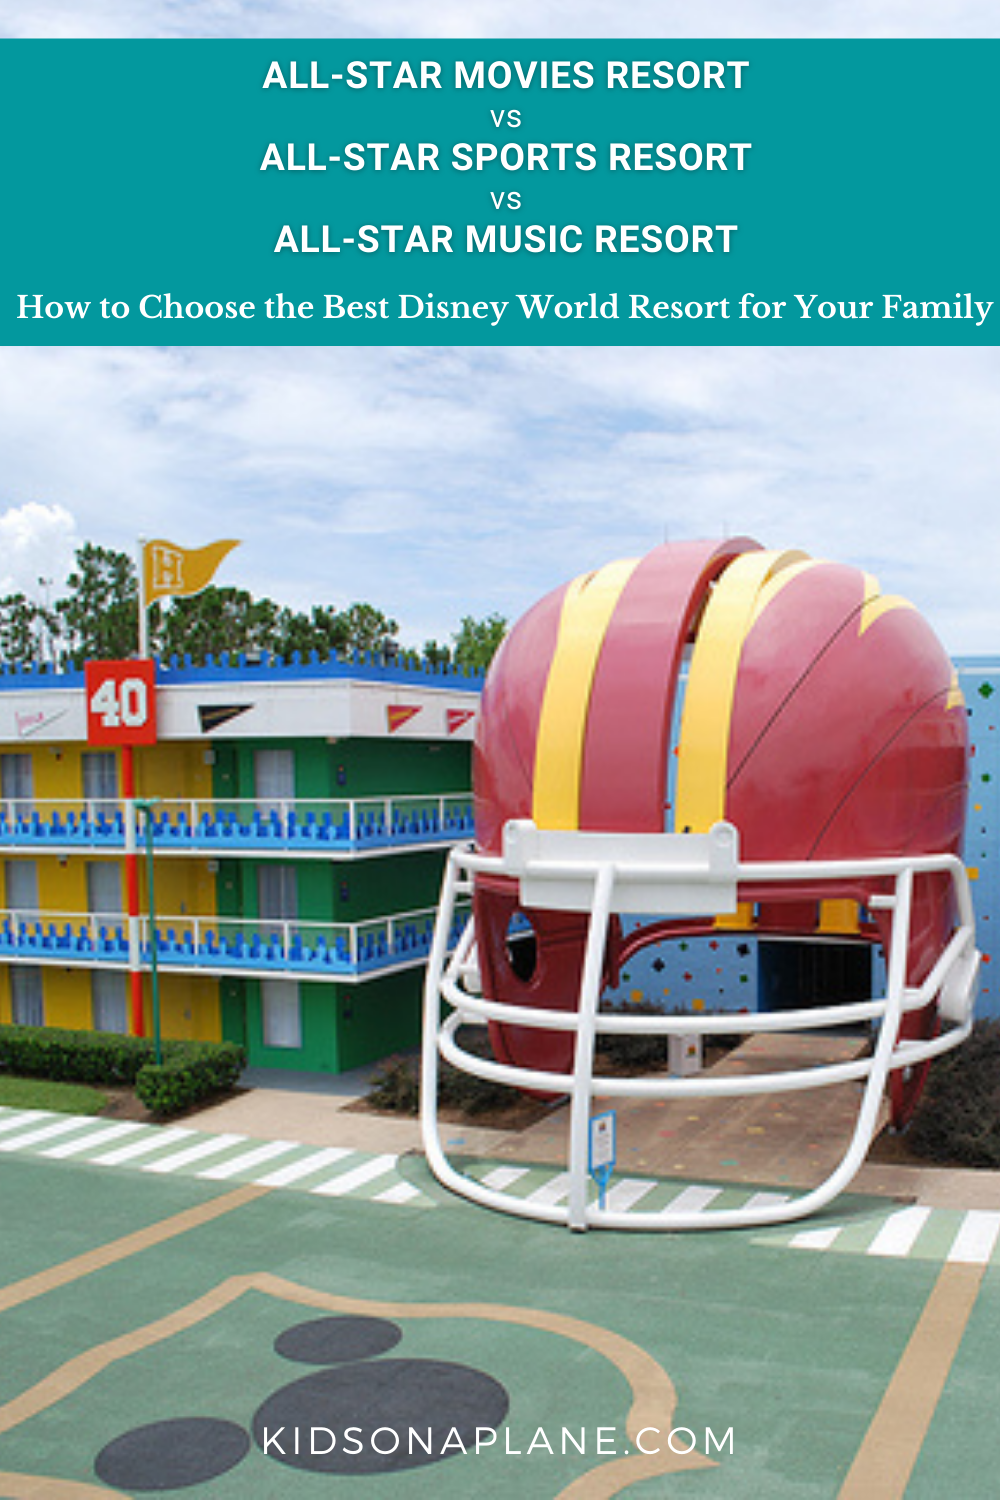 Disney World All Star Resorts - Whats the Best One For Your Family